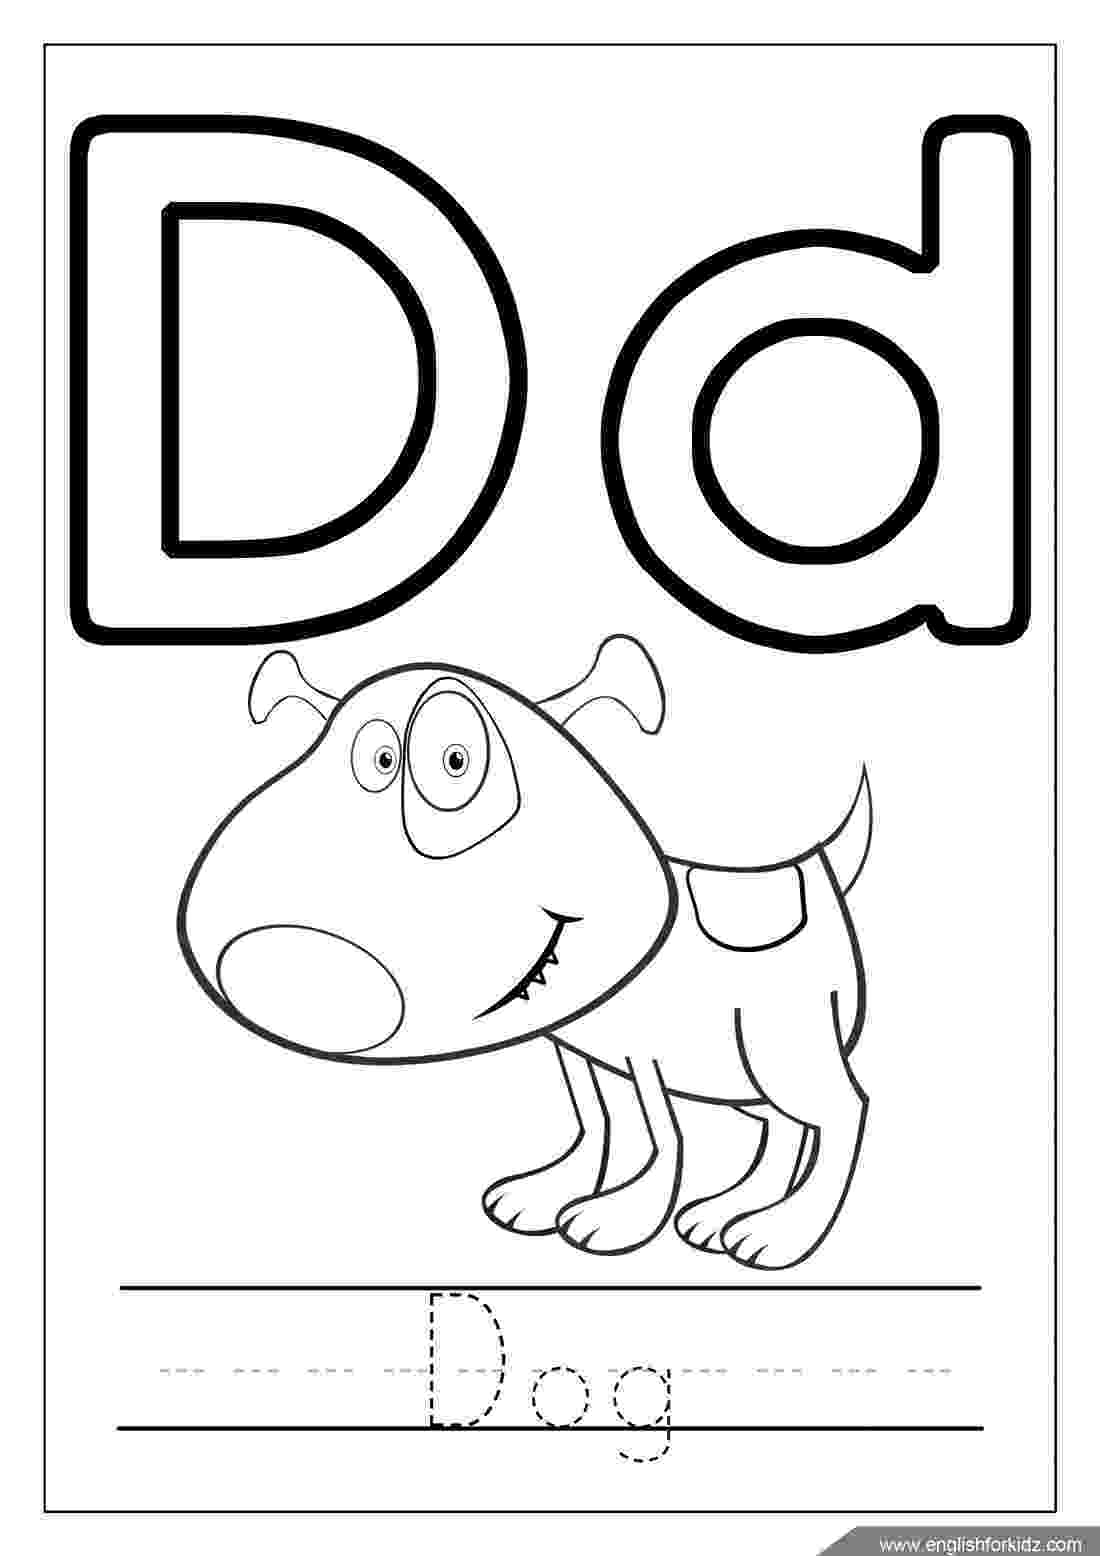 coloring pages of letters free printable alphabet coloring pages for kids best of letters pages coloring 1 1